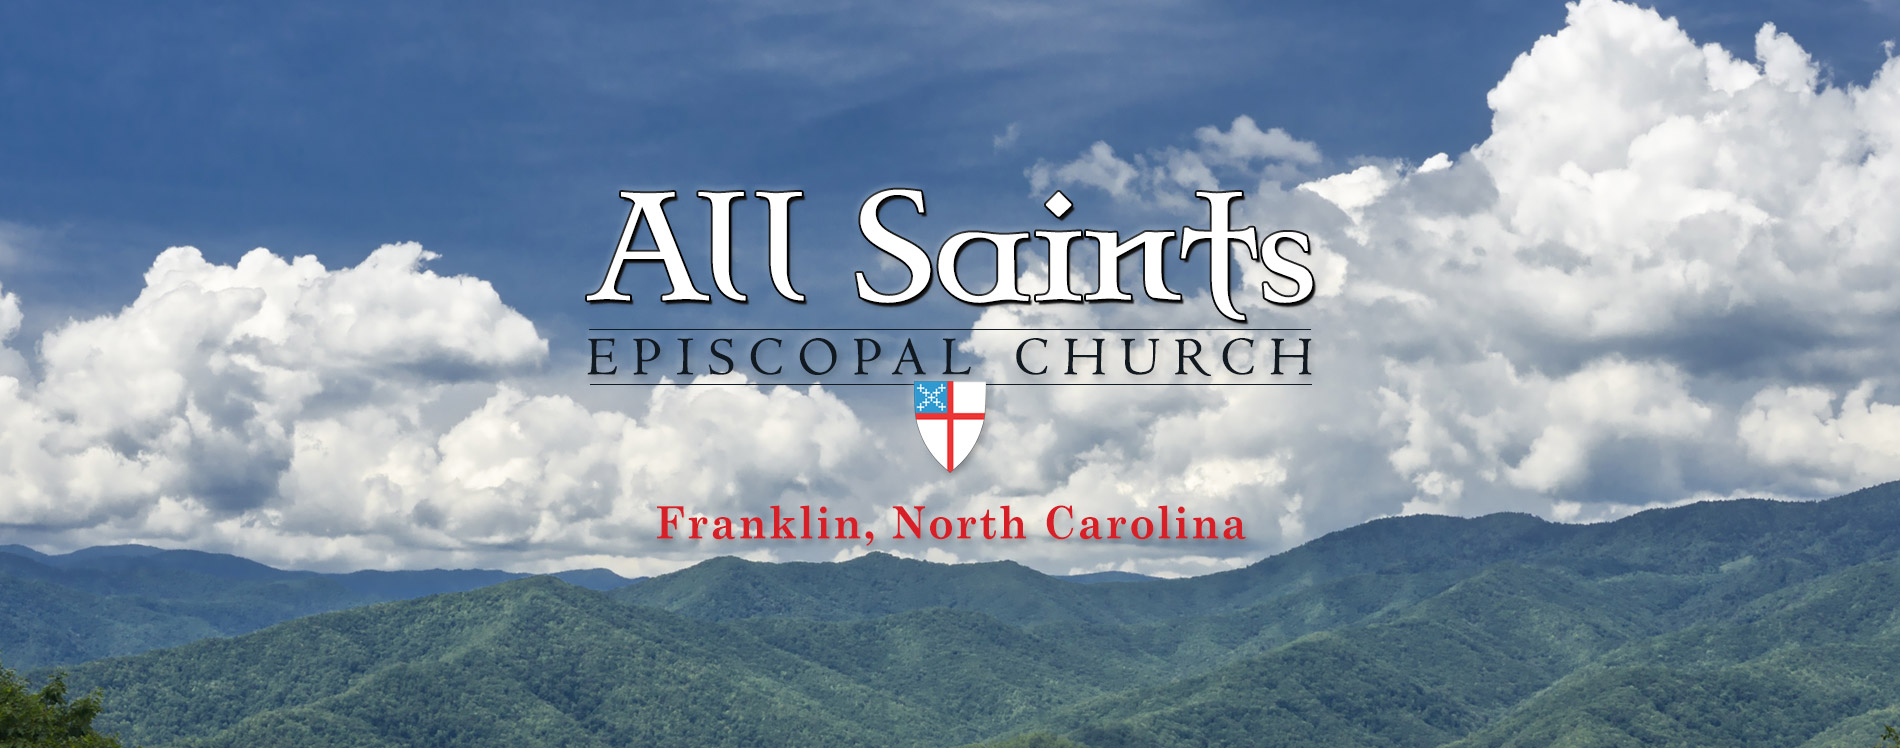 all saints church episcopal franklin nc